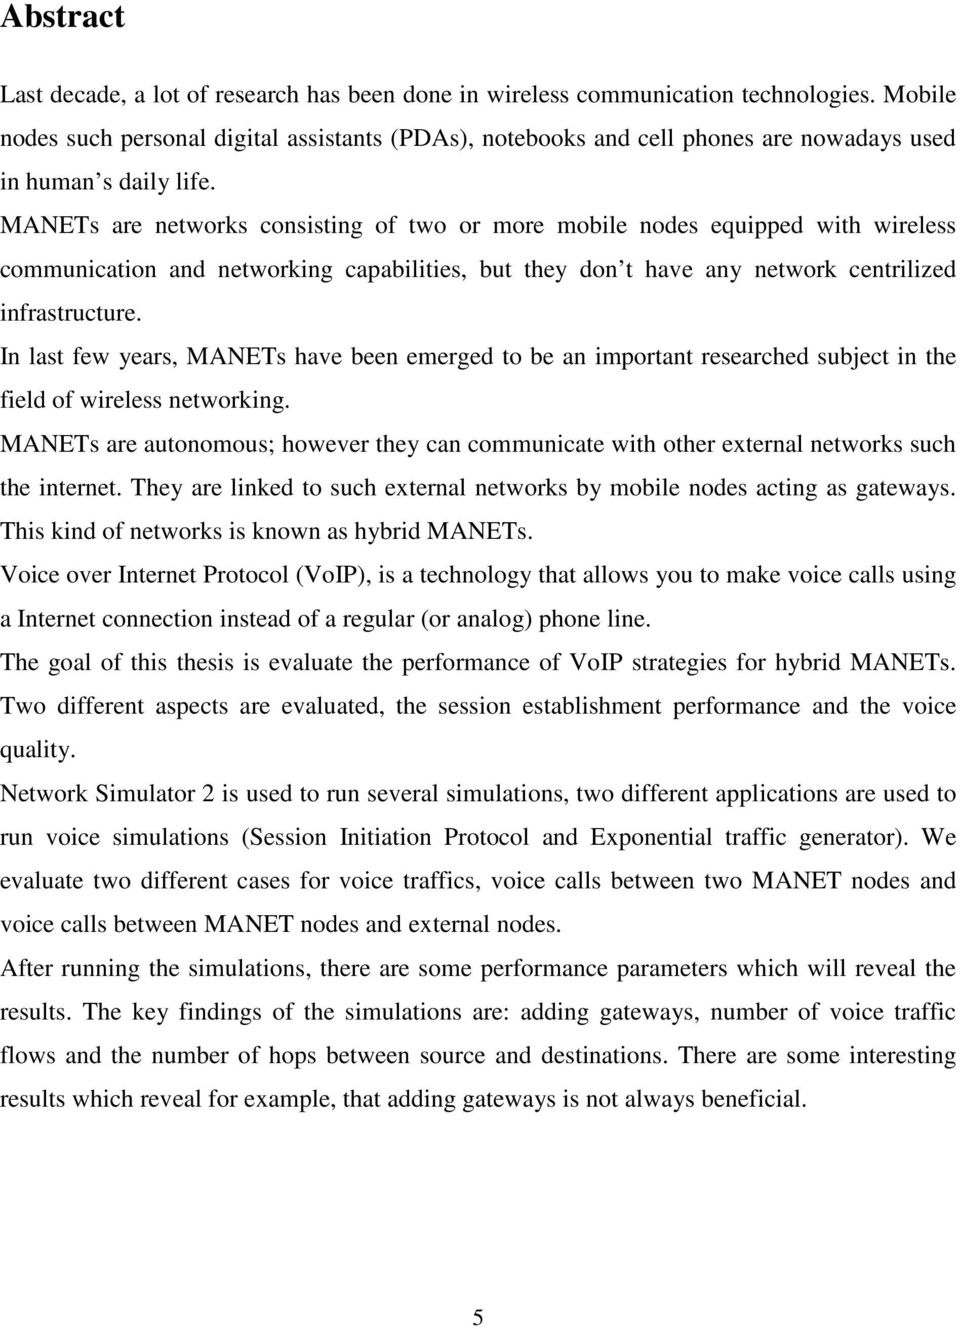 MANETs are networks consisting of two or more mobile nodes equipped with wireless communication and networking capabilities, but they don t have any network centrilized infrastructure.